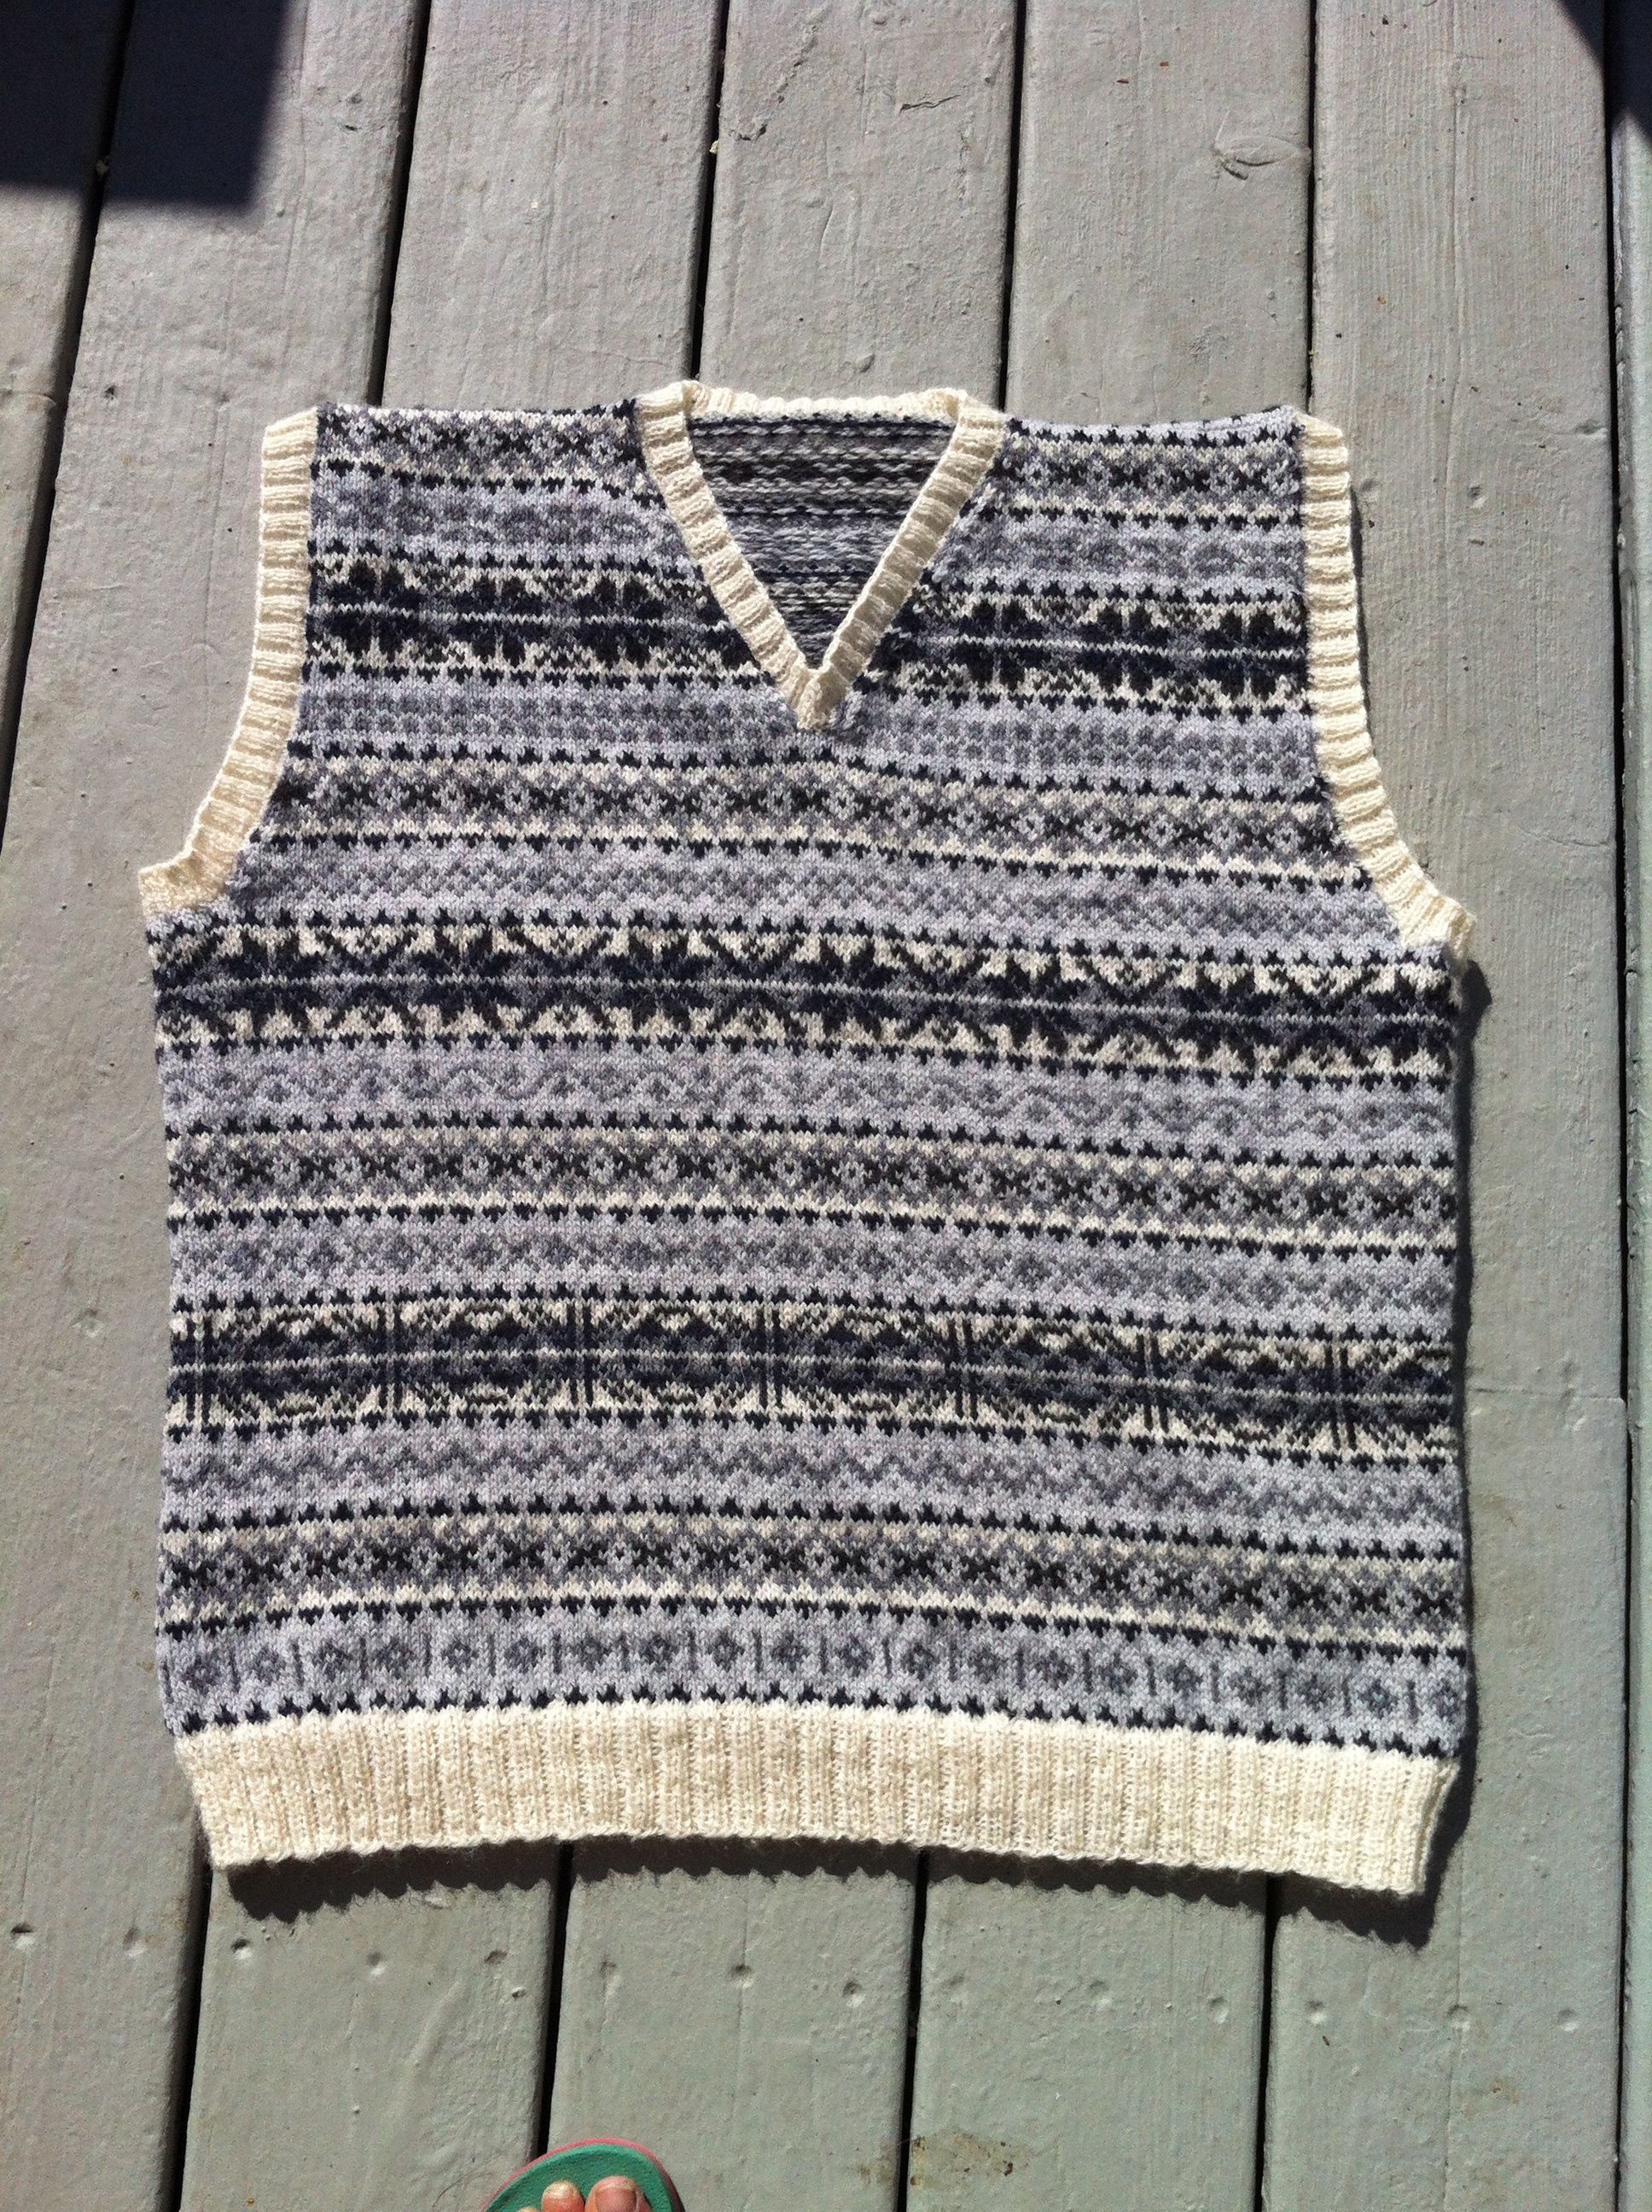 Knitting Pattern Chest Sizes : 40 inch chest. Size 2 circular needles. Two handed stranded colorwork. Steeke...